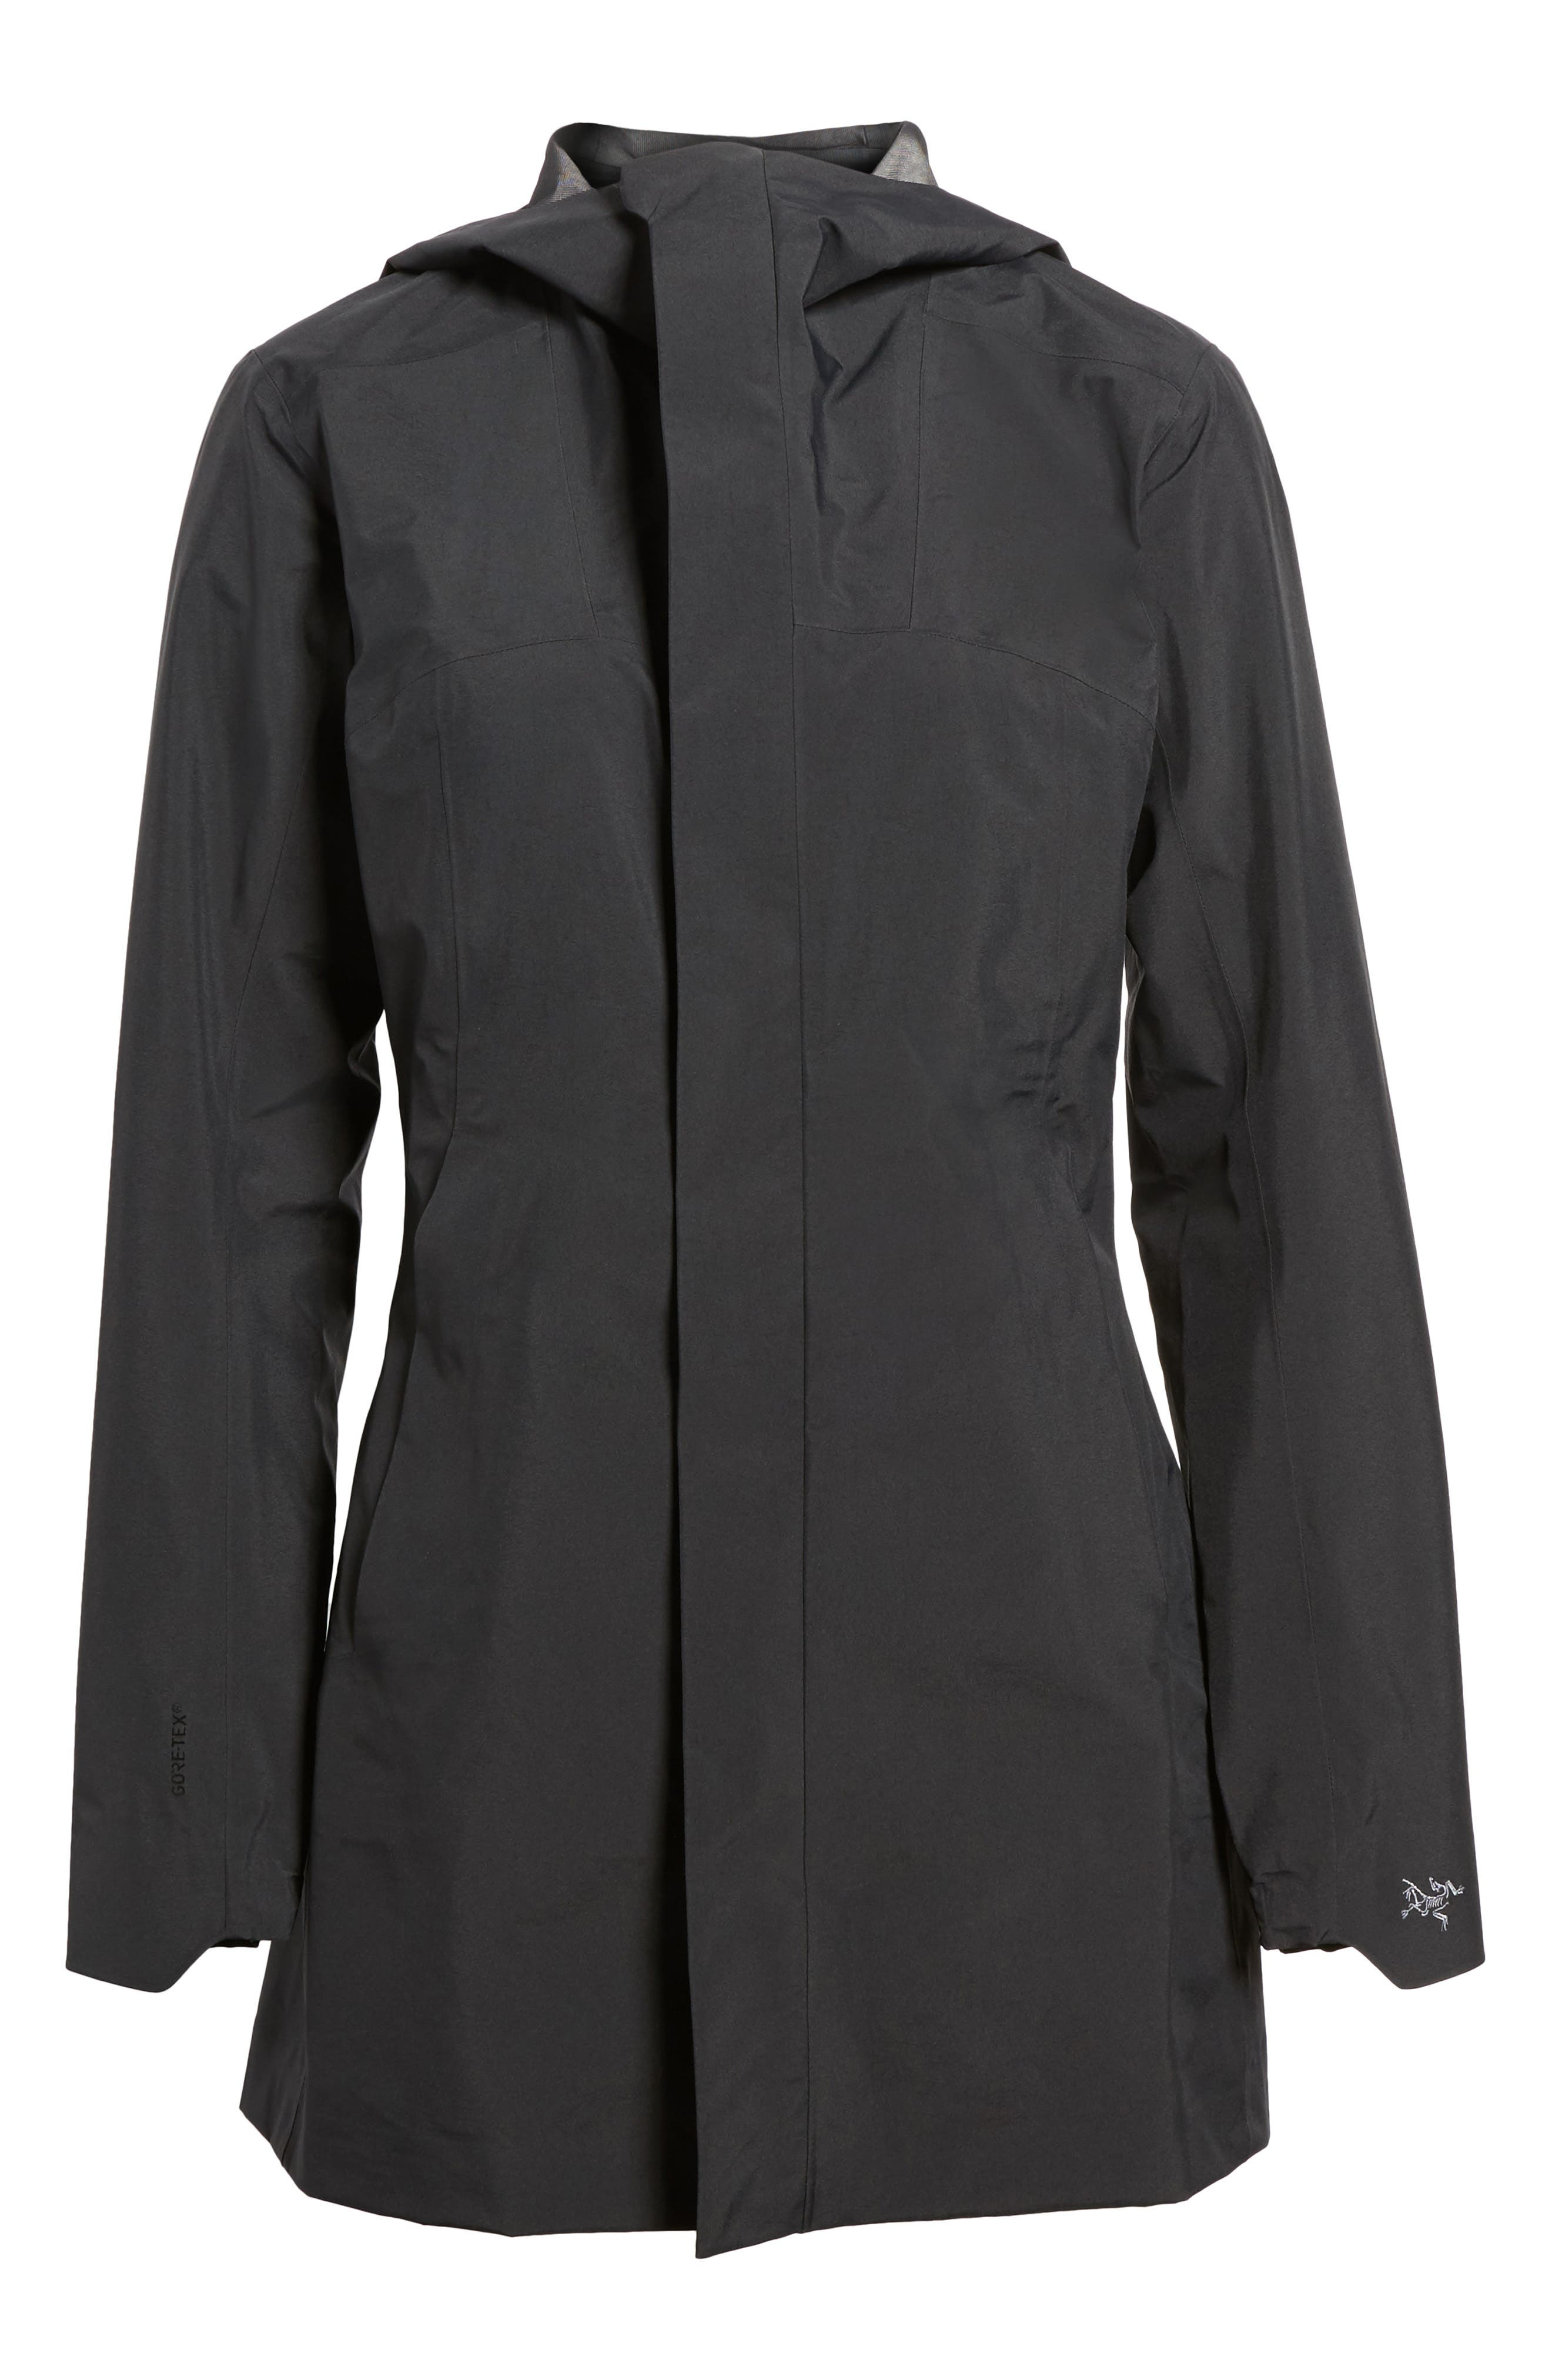 Codetta Waterproof Relaxed Fit Gore-Tex<sup>®</sup> 3L Rain Jacket,                             Alternate thumbnail 10, color,